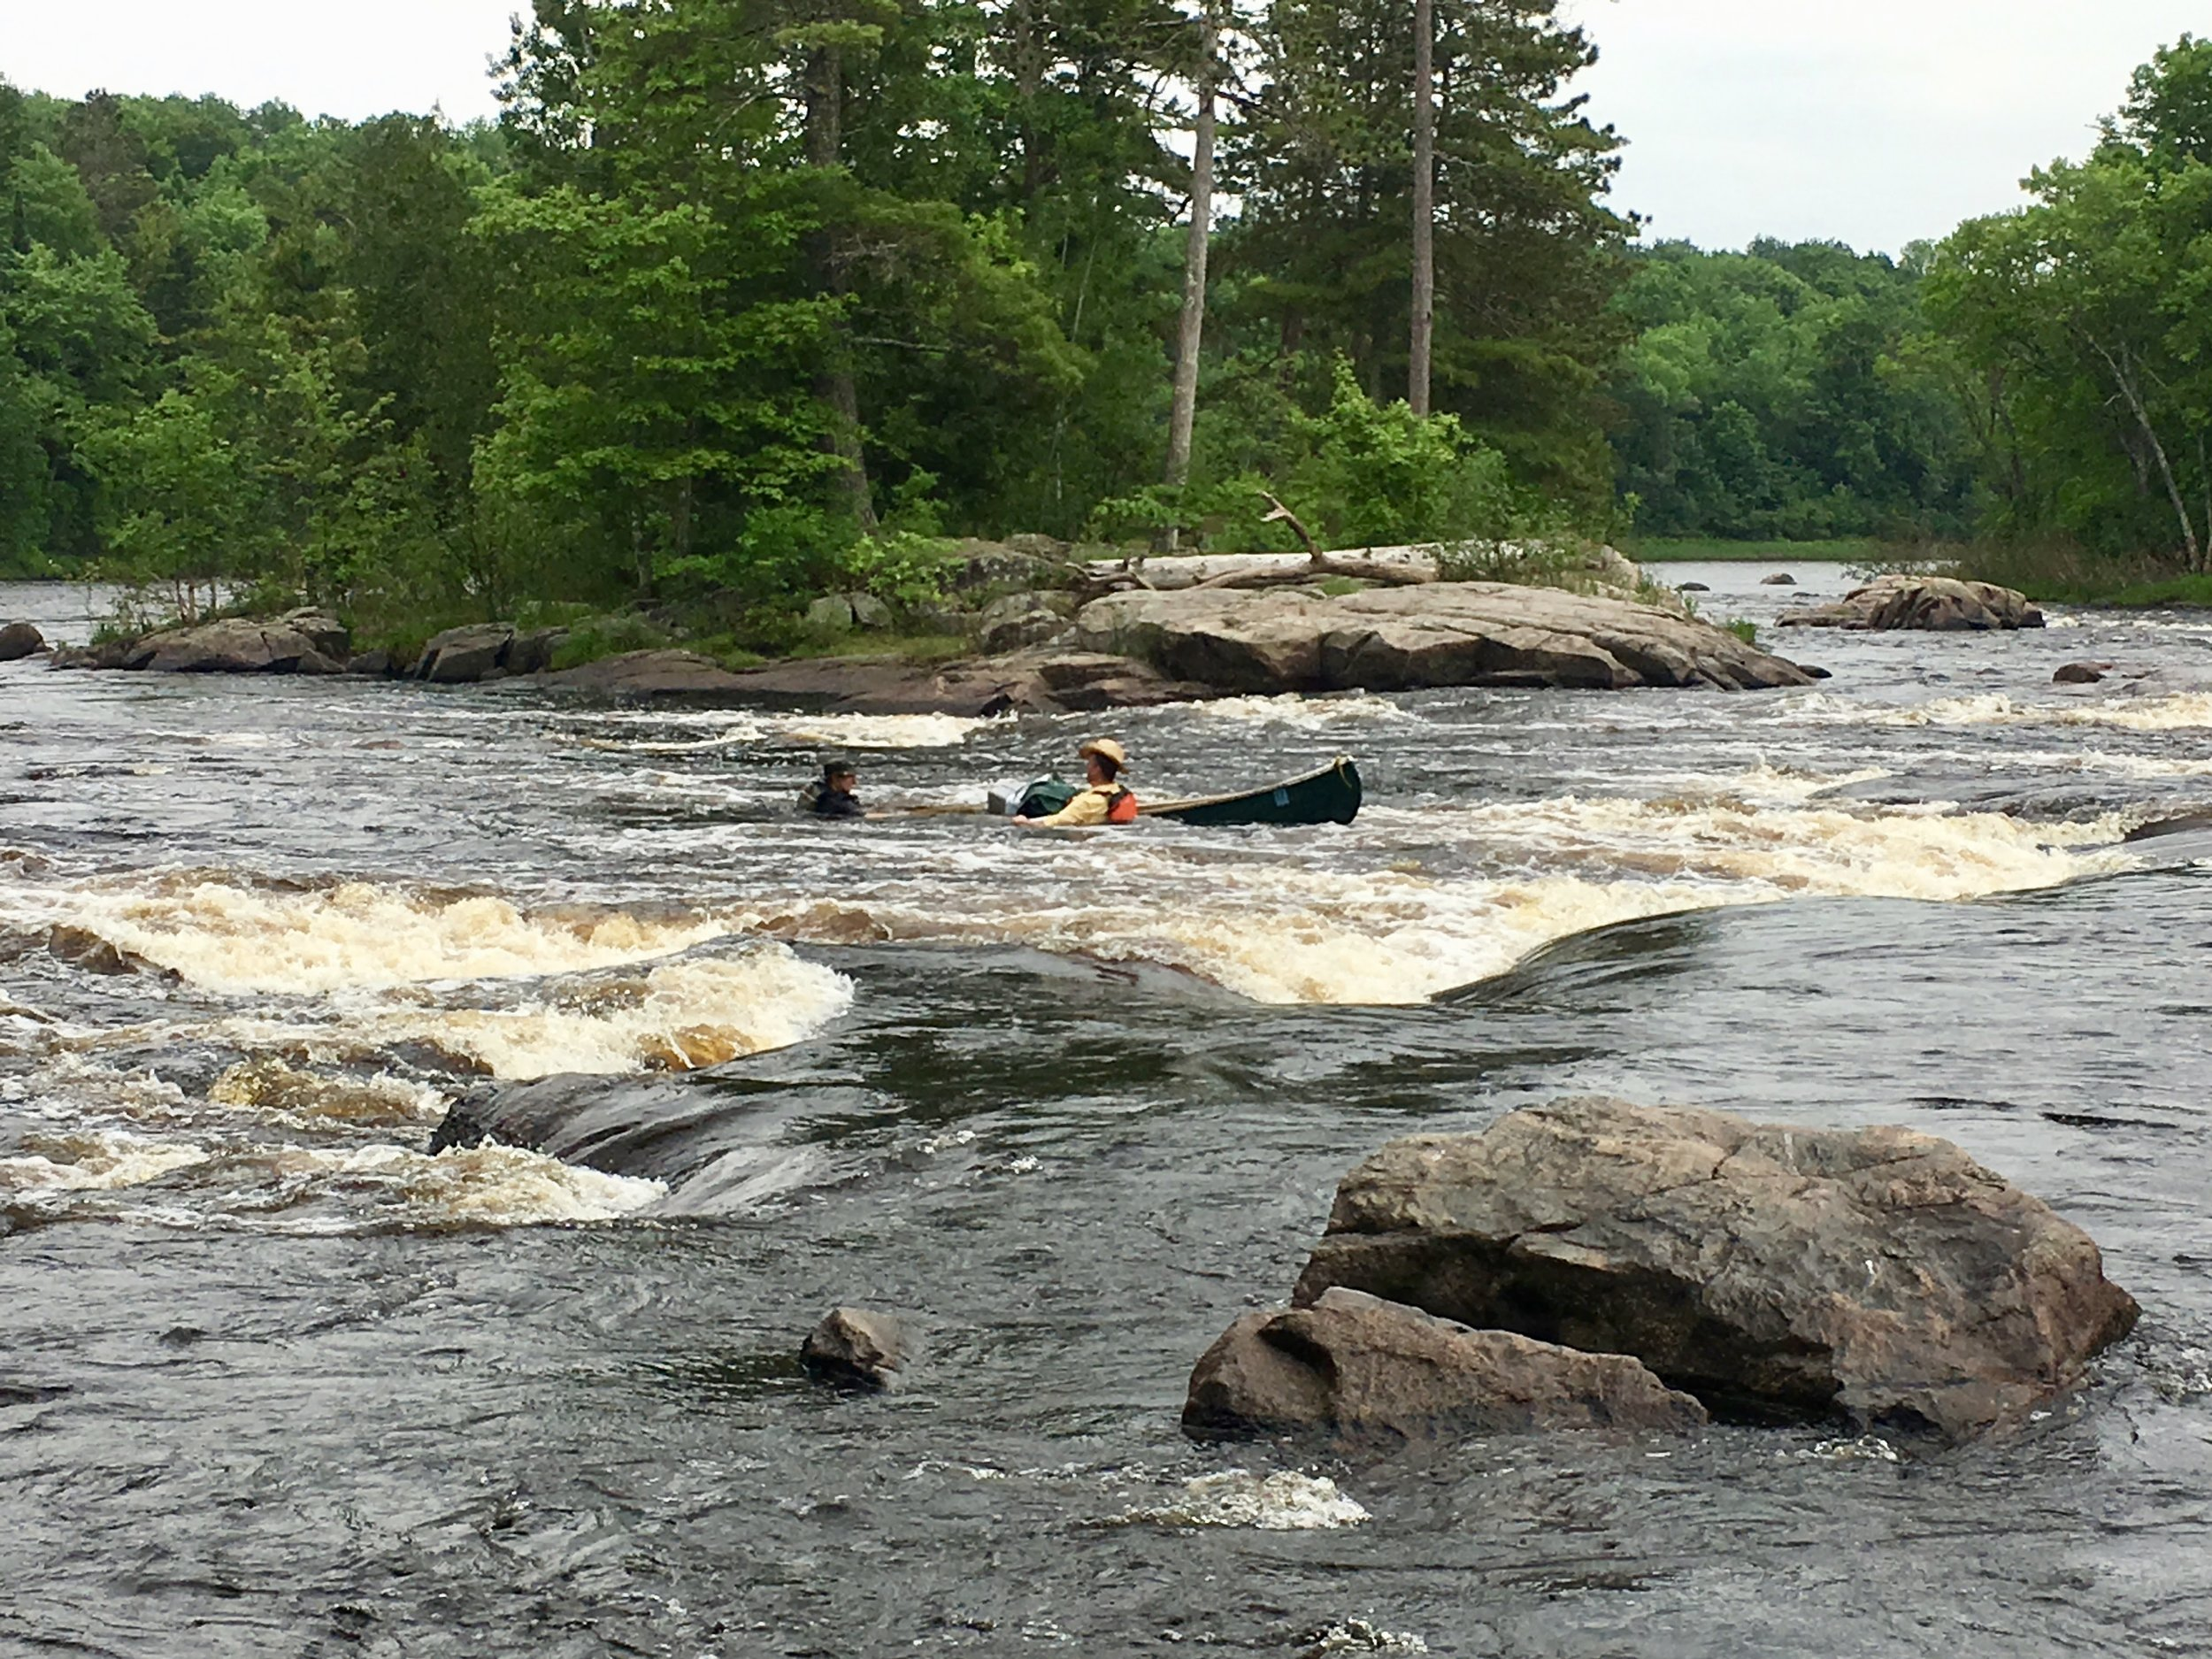 BMP Post_Expedition Log_Flambeau River_Swimming 2_July 2017.jpeg